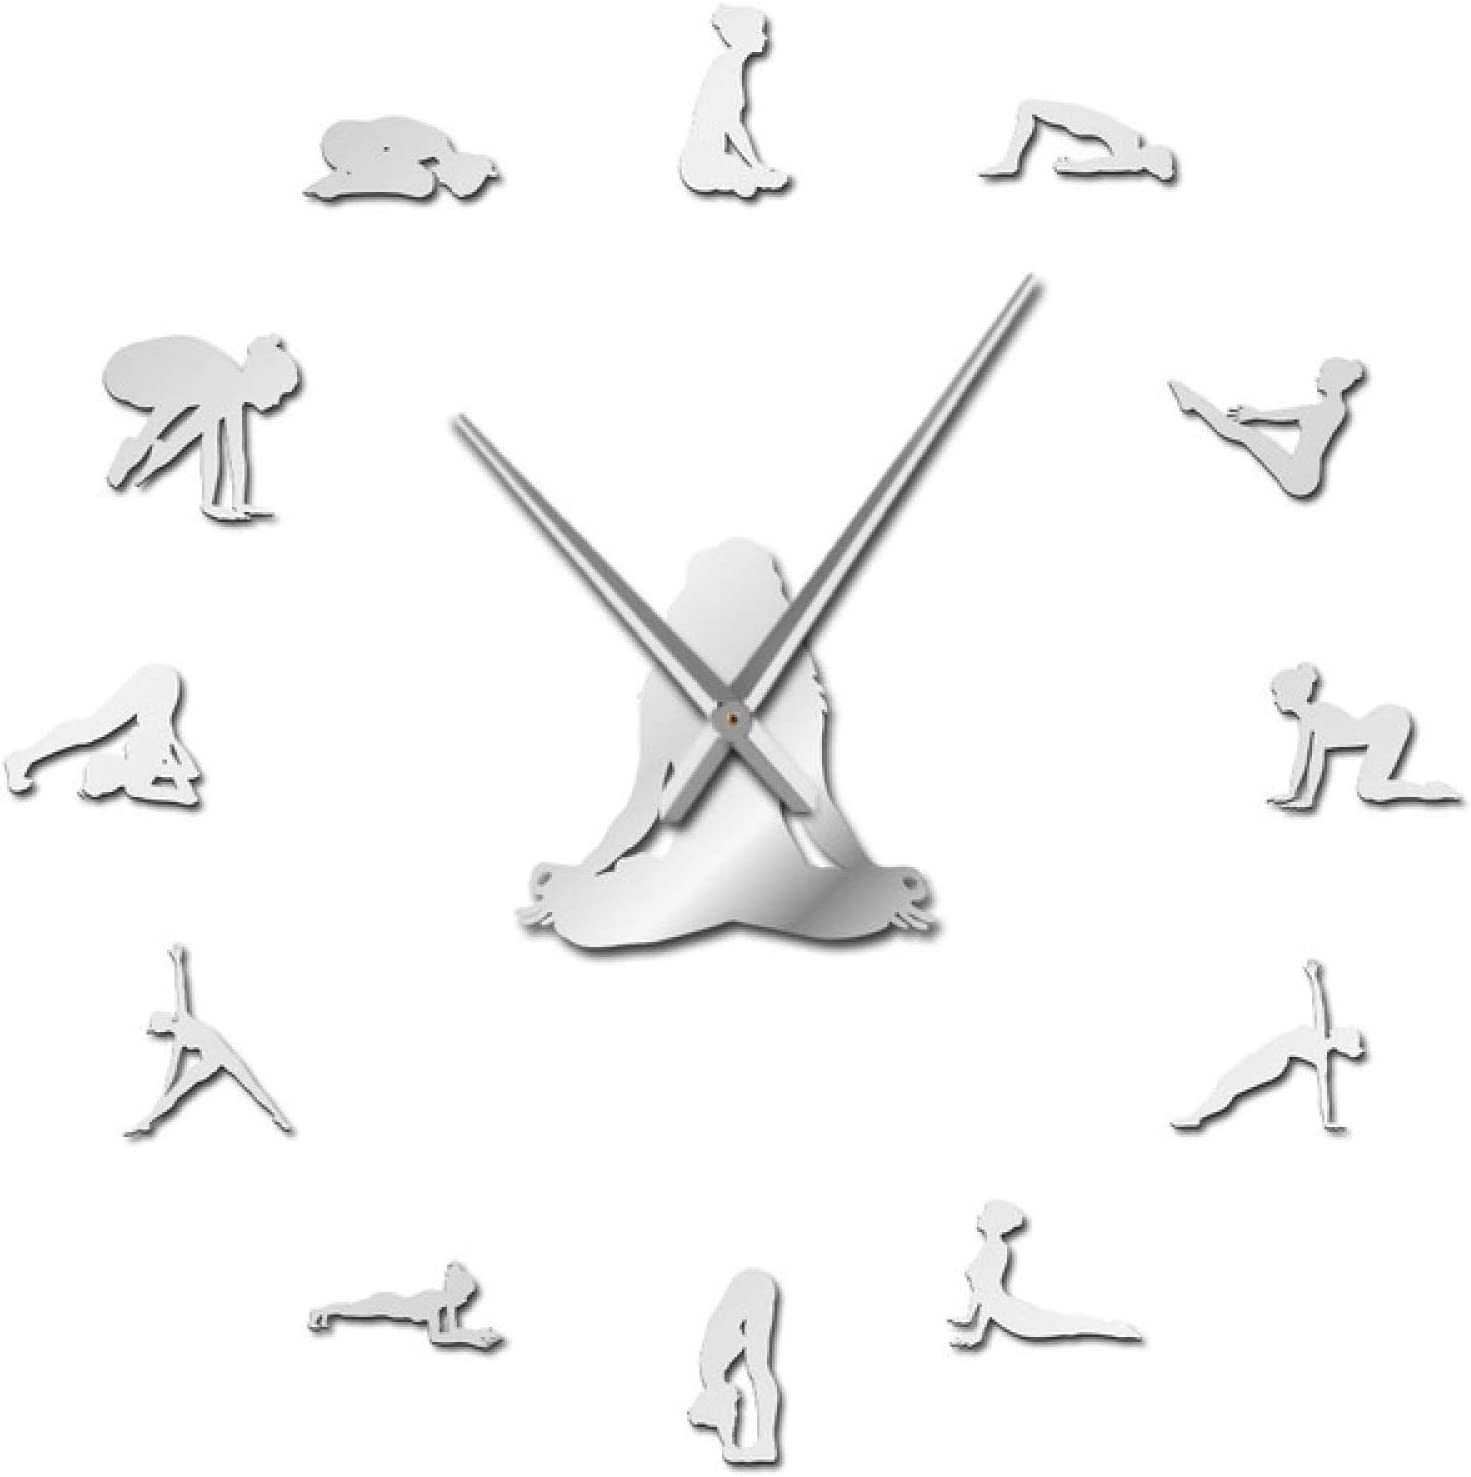 Xinxin Wall Clock Yoga Girl Design DIY 3D Acrylic Wall Clock Special Clock Fashion Home Decor Self Adhesive Quartz Mirror Sticker Gift for Her for Living Room and Bedroom Etc